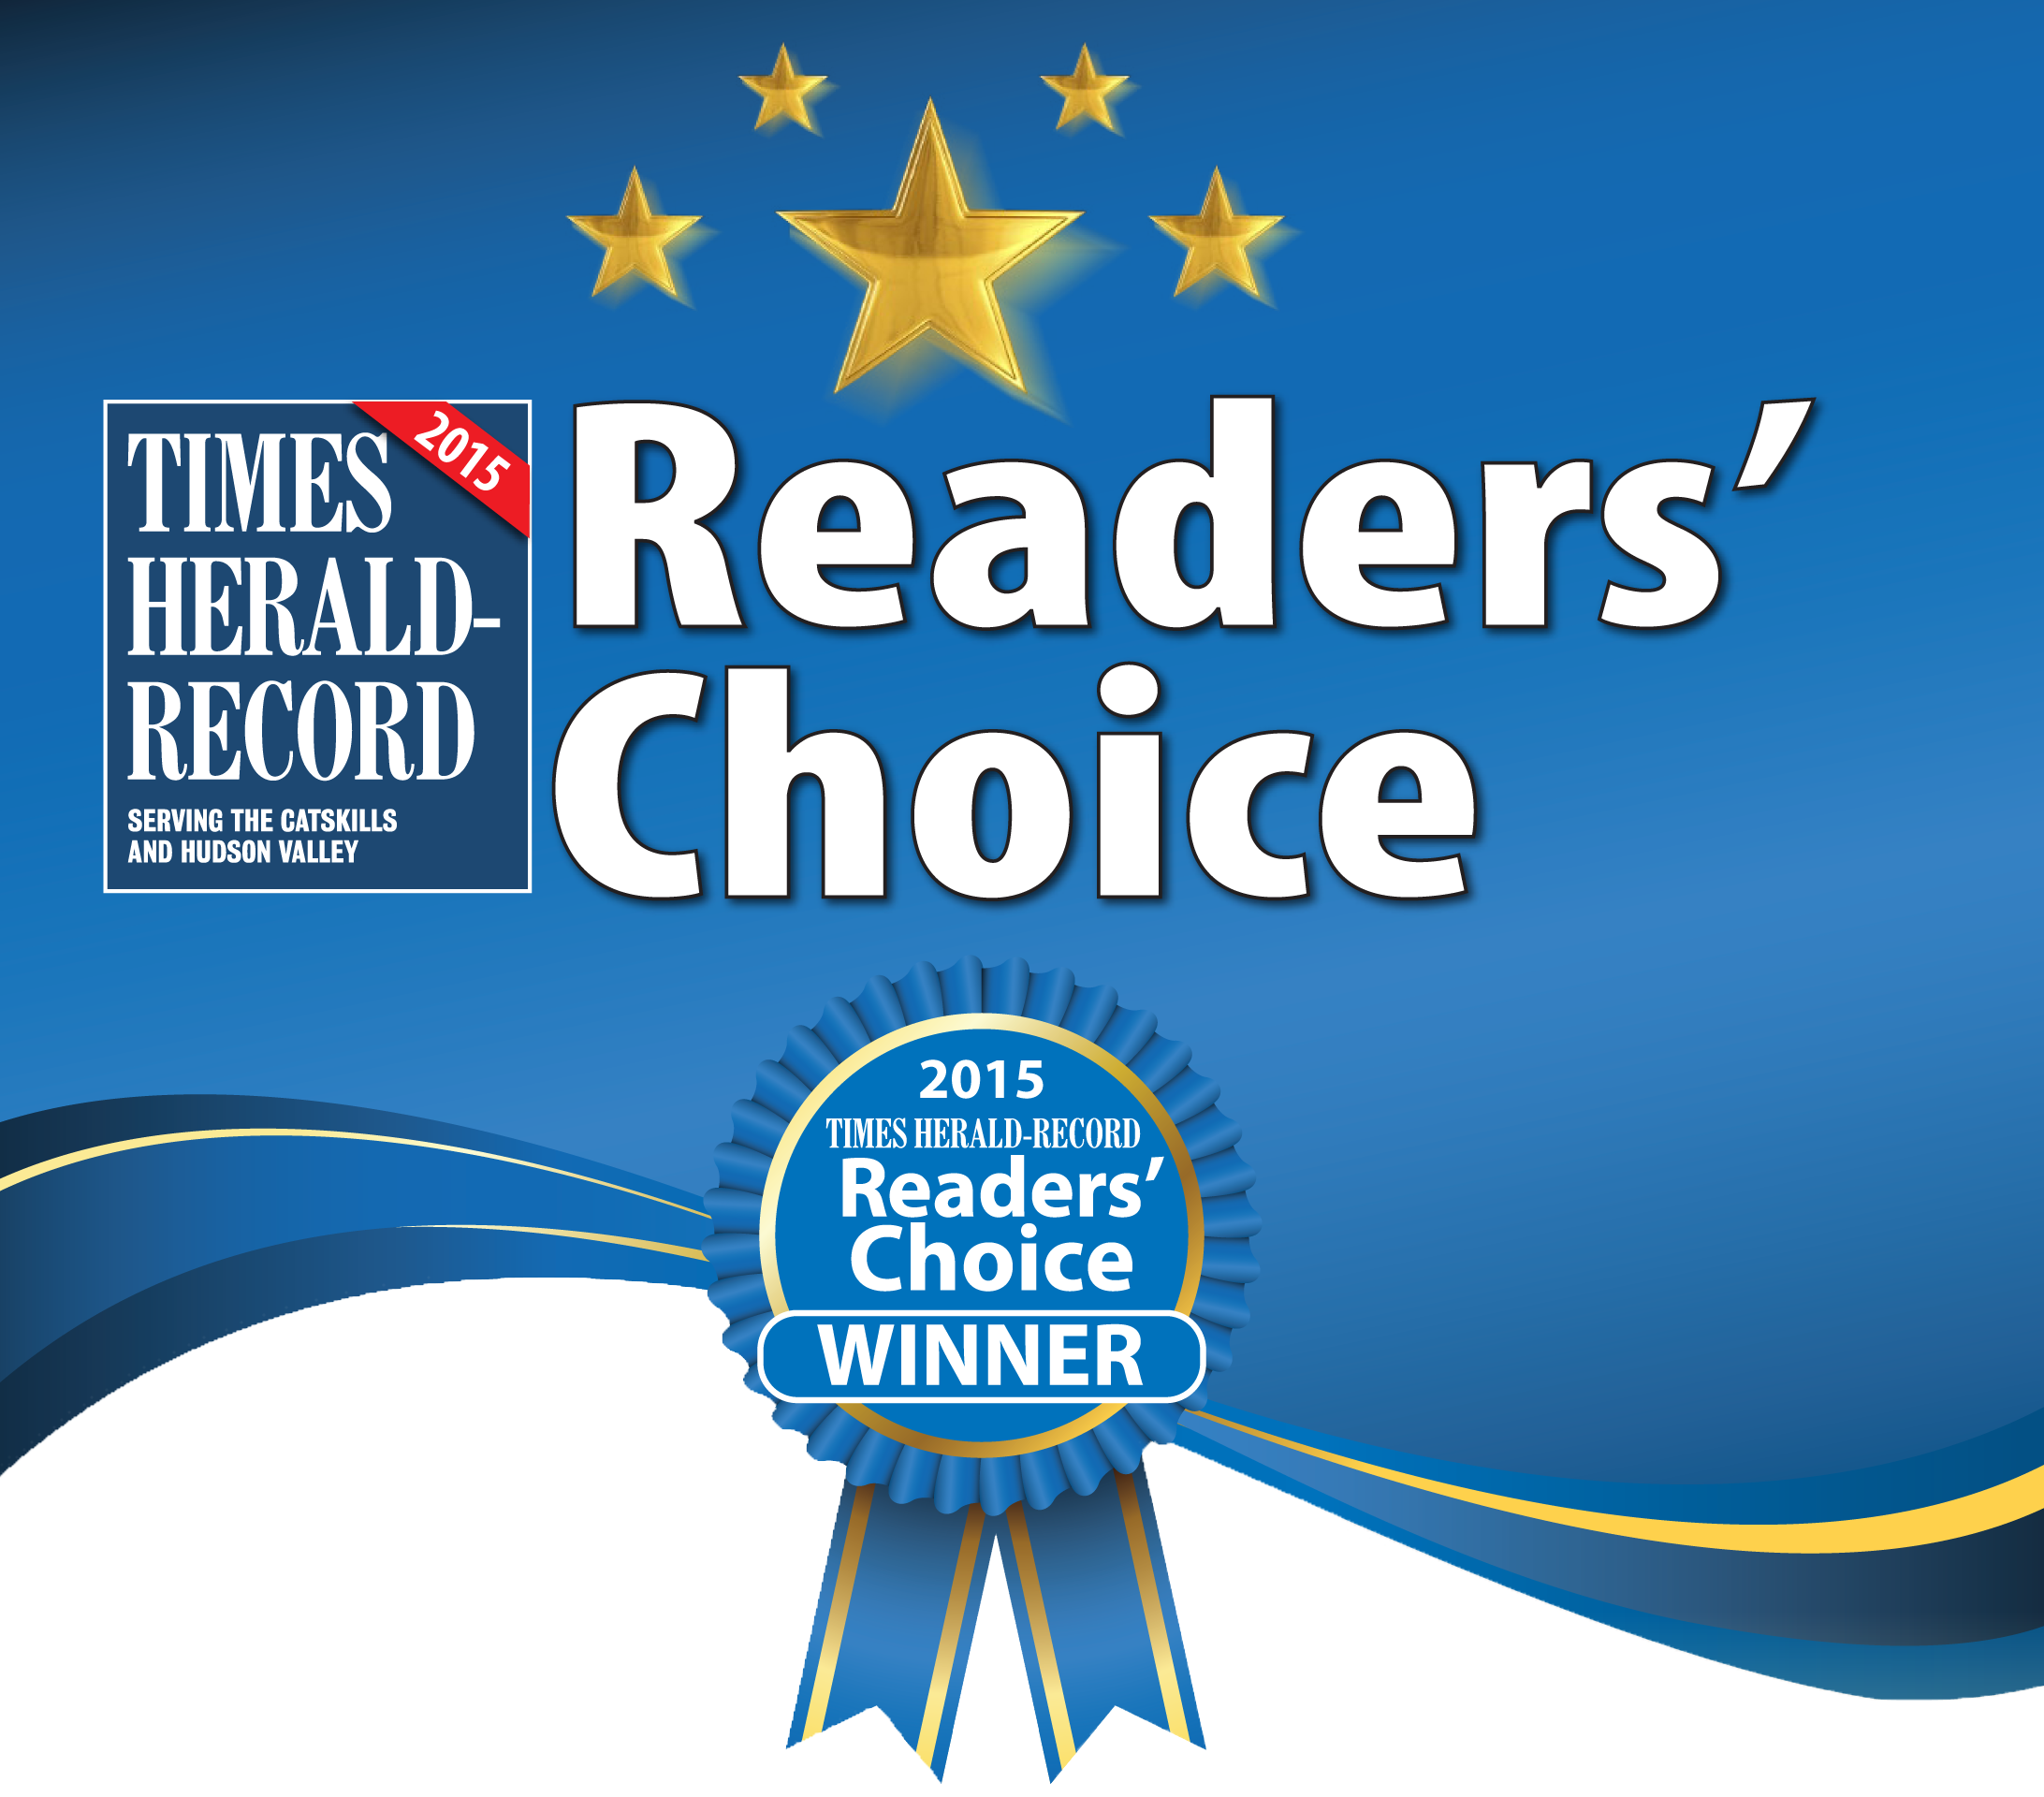 congratulations to the times herald